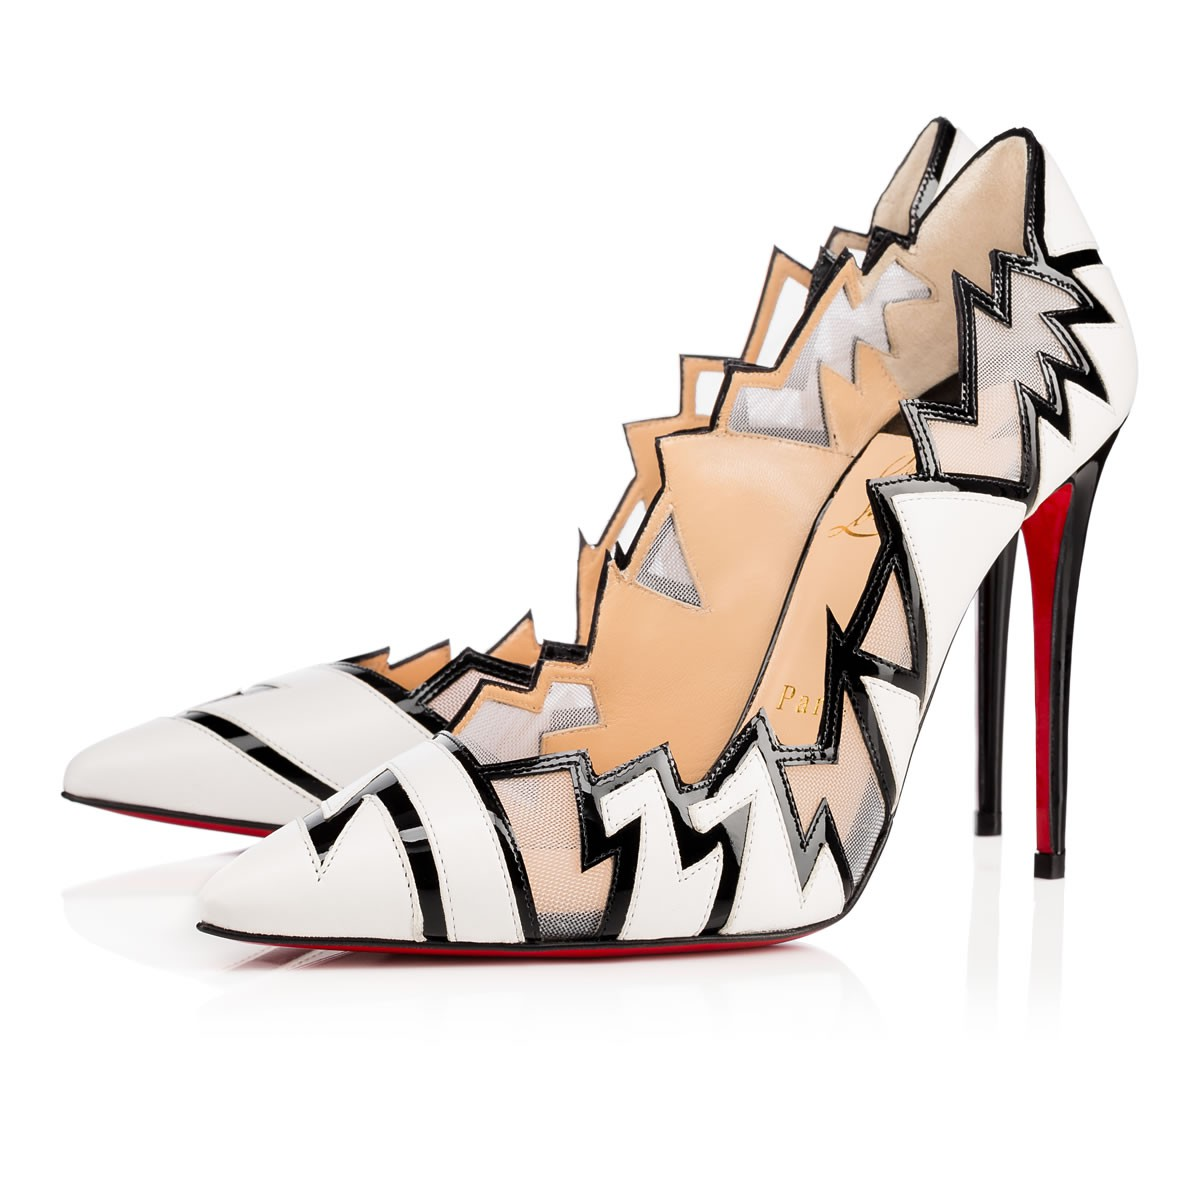 Christian Louboutin EXPLORETE NAPPA SHINY/PATENT 100 Latte Lambskin - Women Shoes